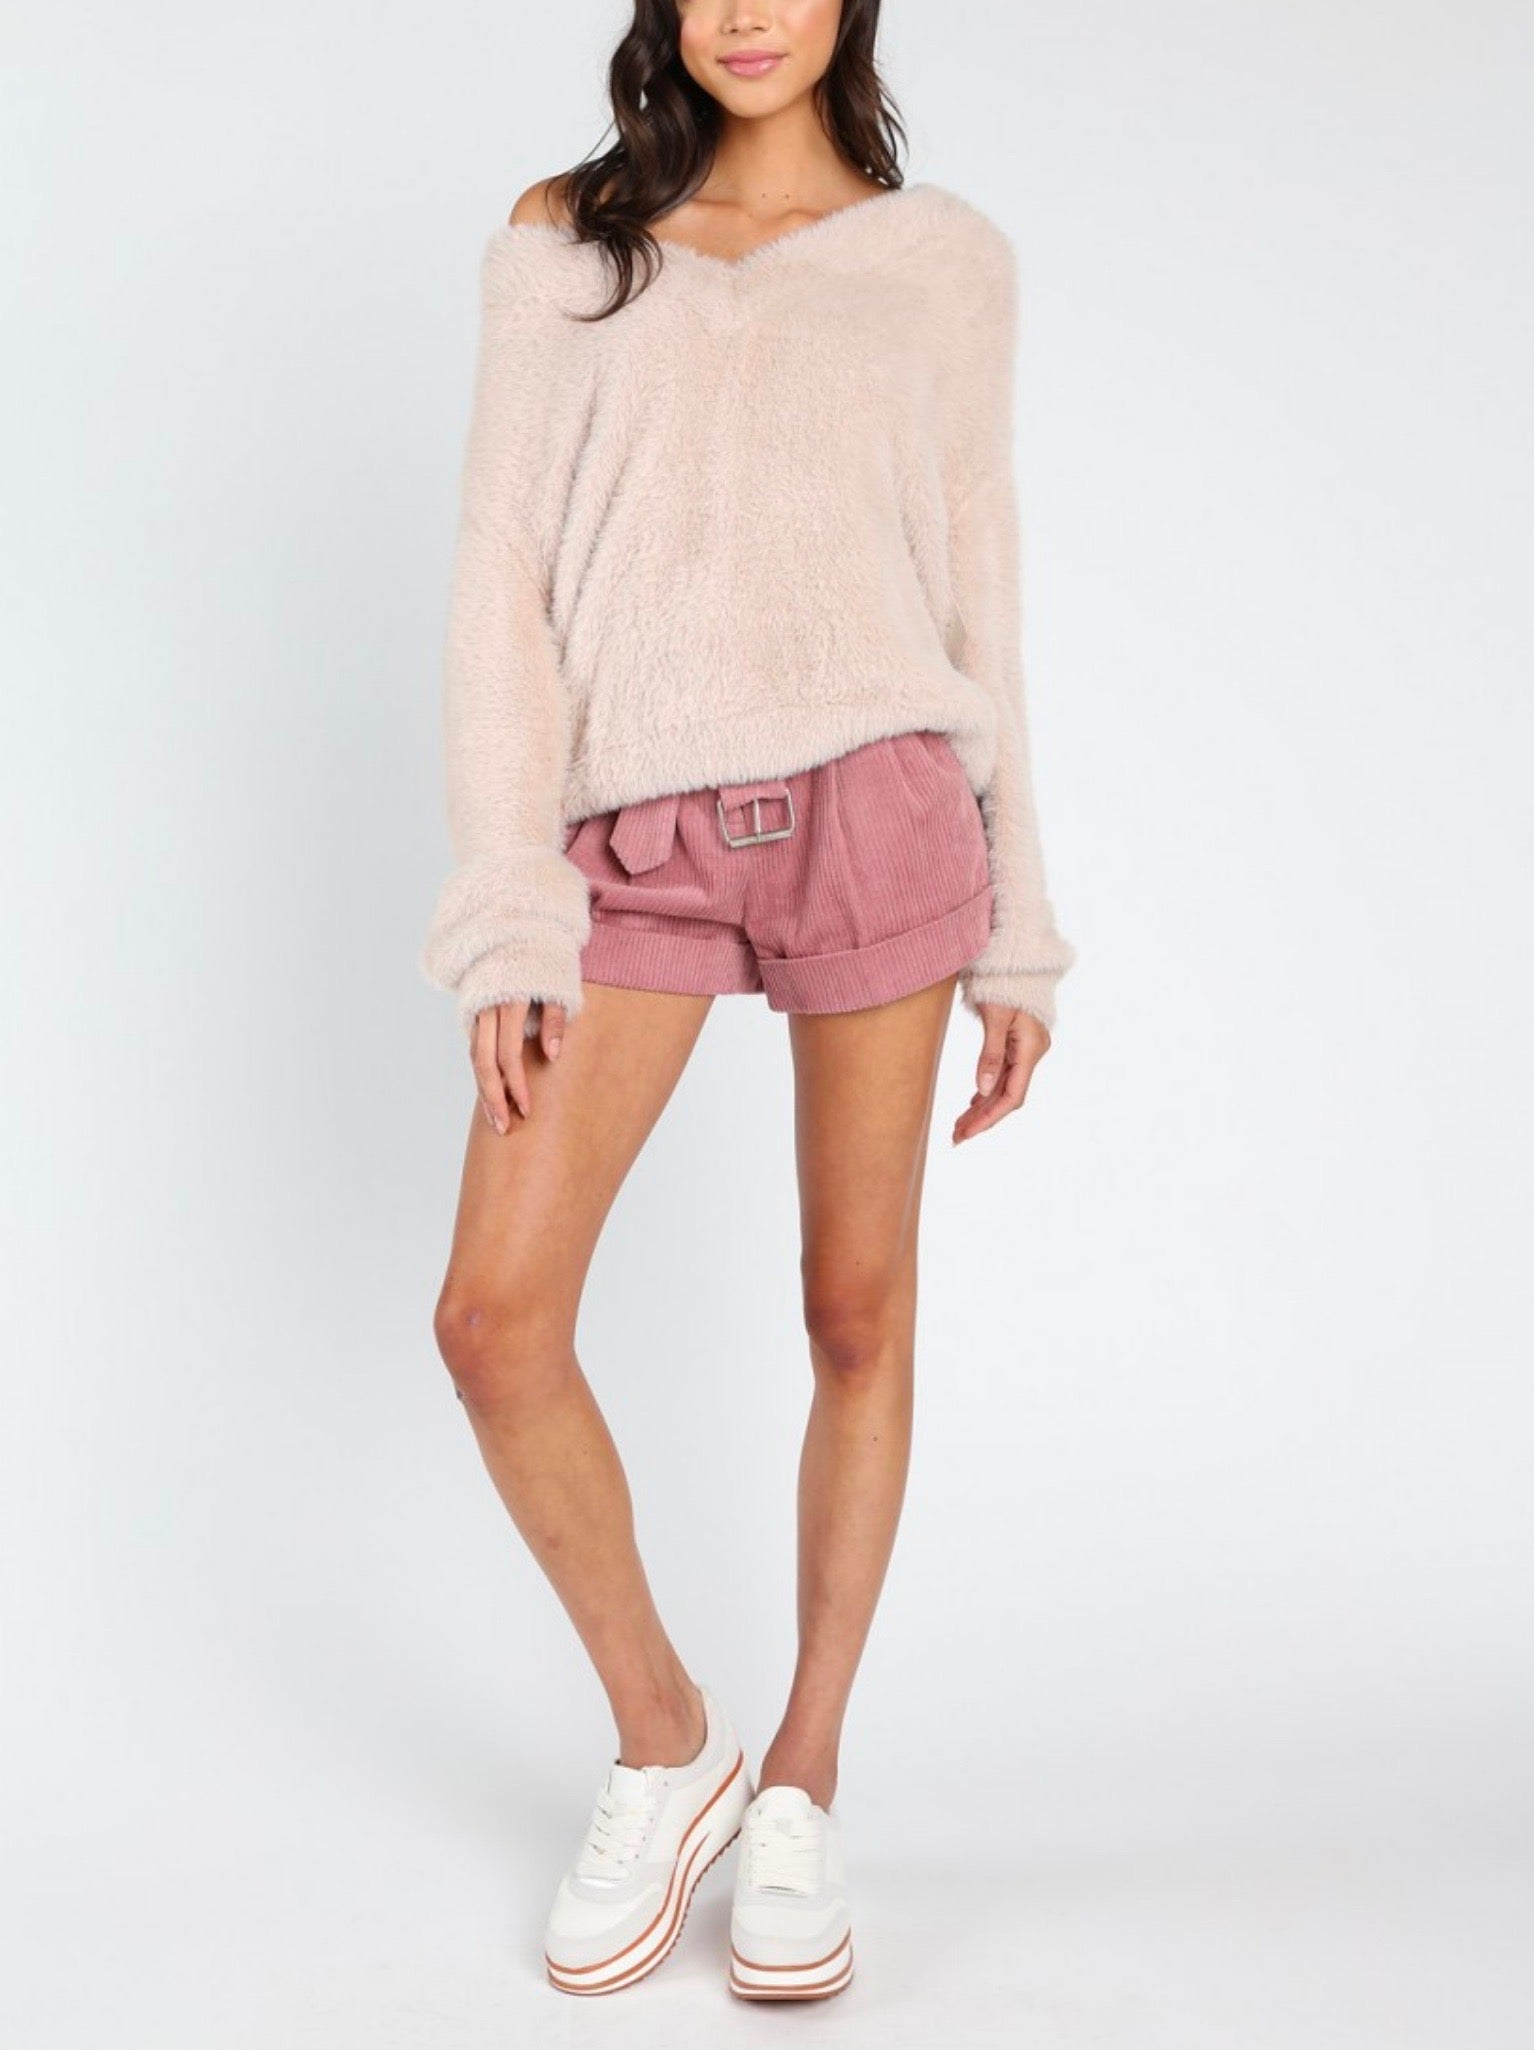 436641abbcb36 Honey Punch - Luna off shoulder fuzzy sweater - Taupe - M